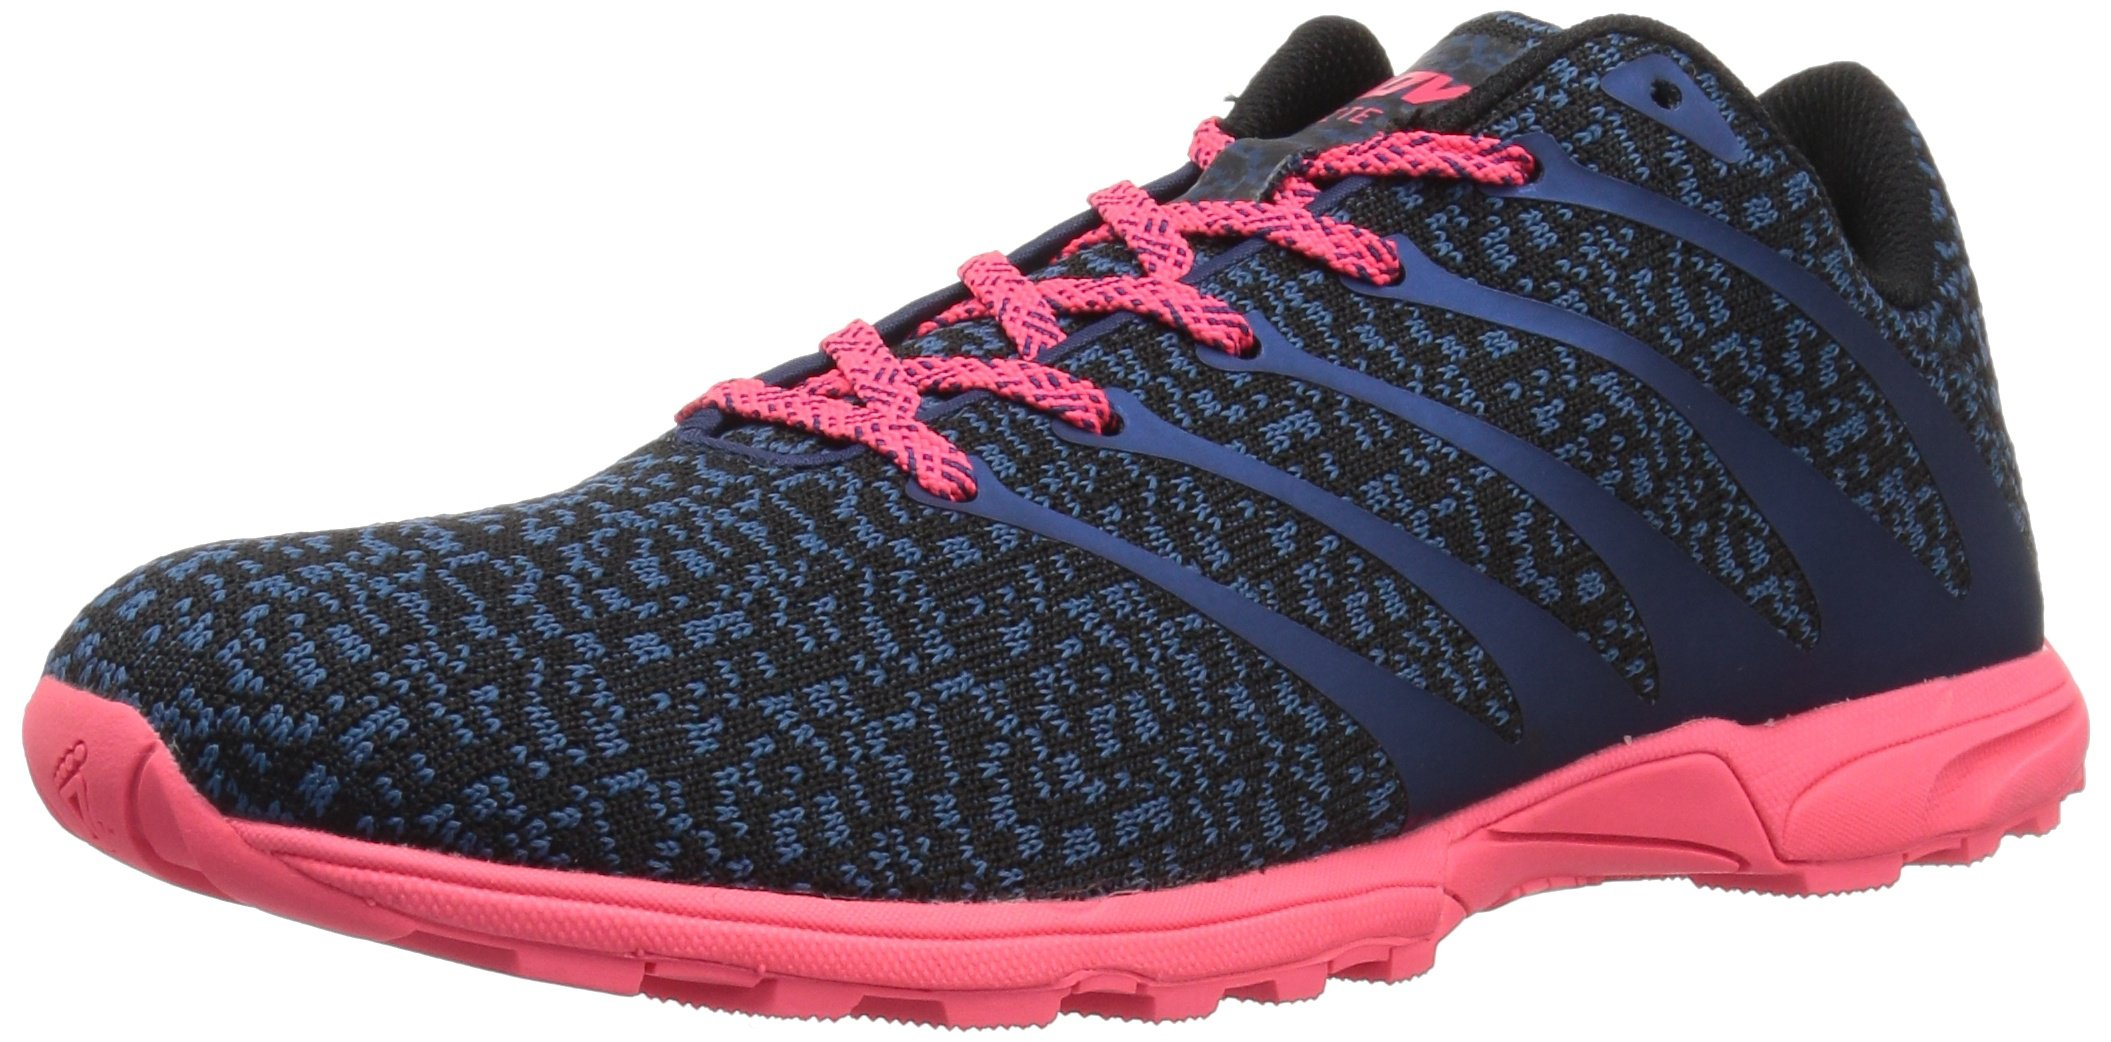 inov-8 Women's F-Lite 195 CL (W) Cross-Trainer-Shoes, Blue/Pink, 9 a US